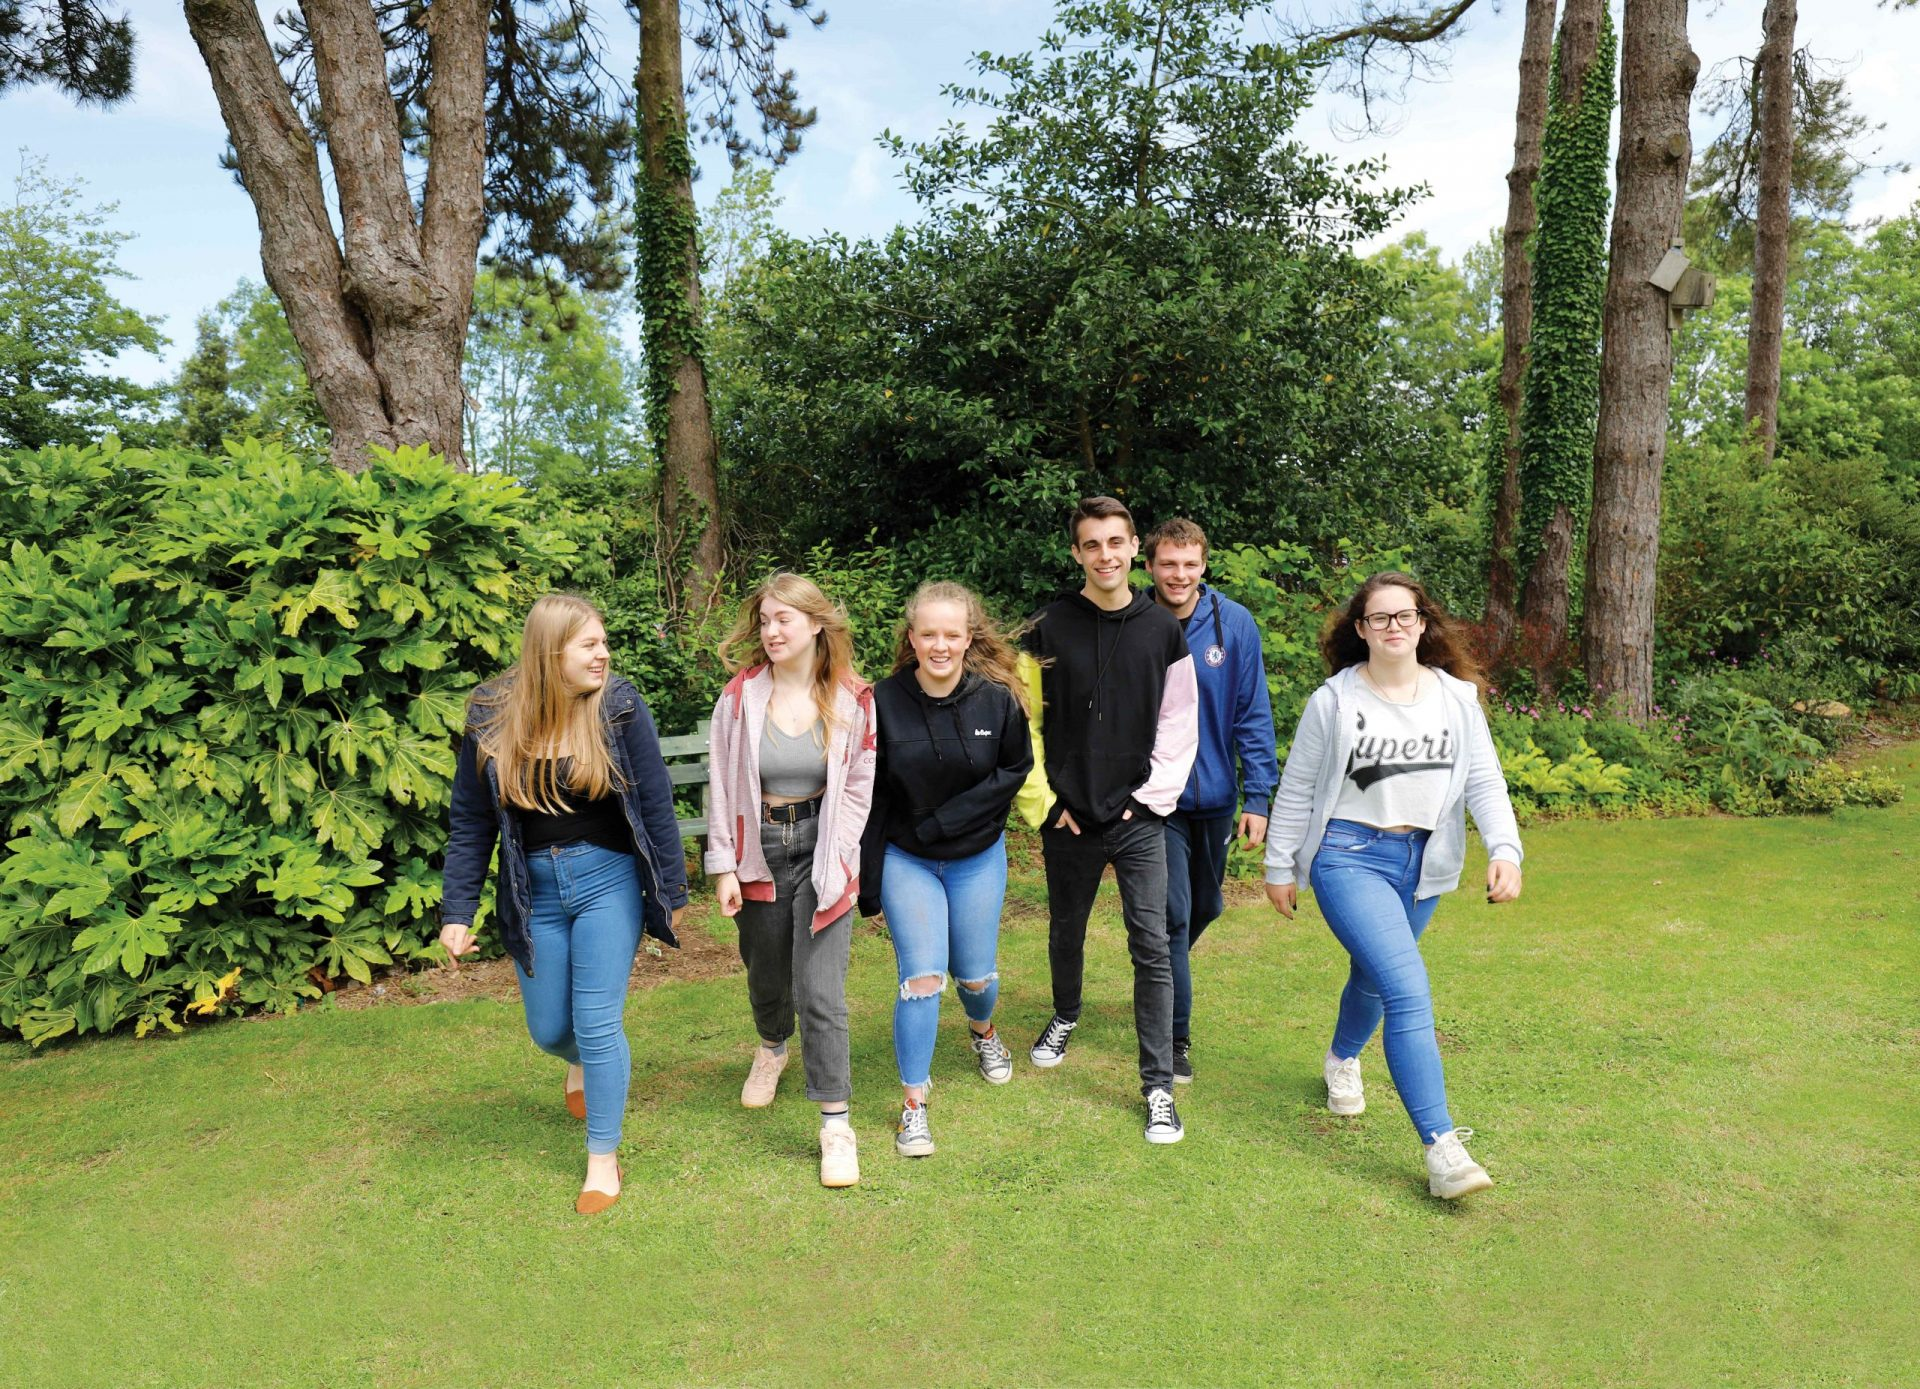 Group of students walking through garden smiling